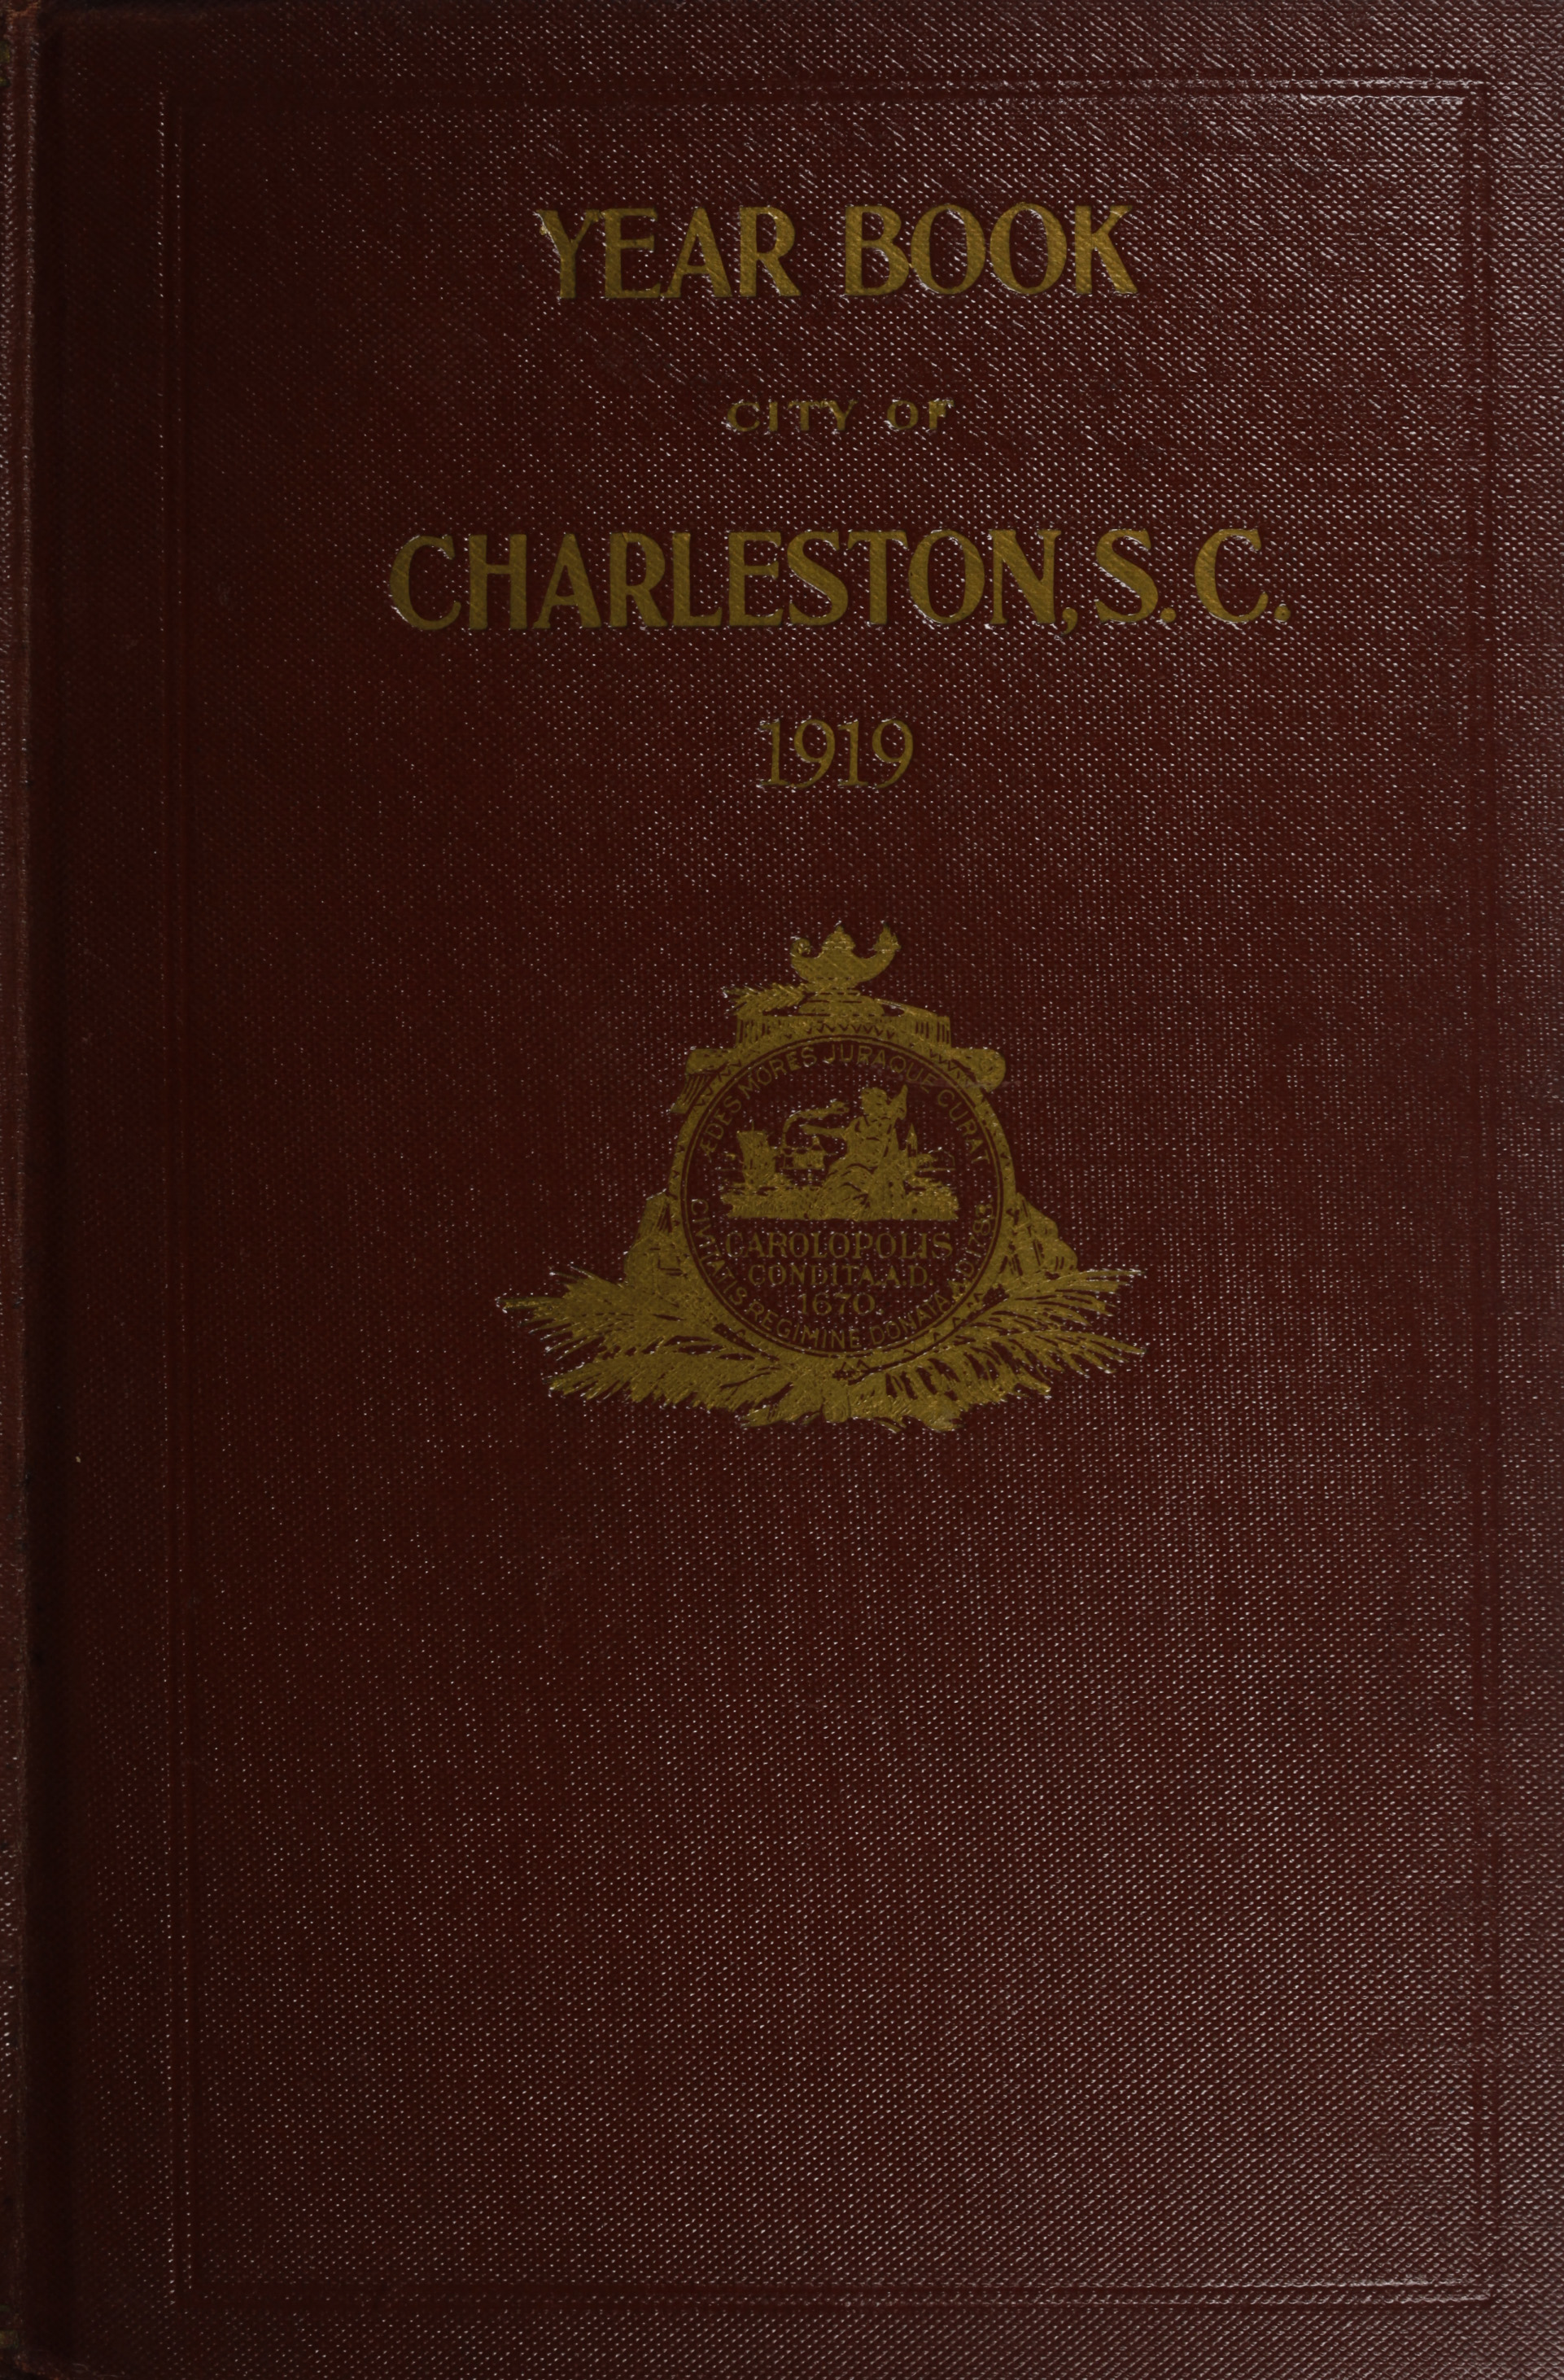 Charleston Yearbook, 1919, cover